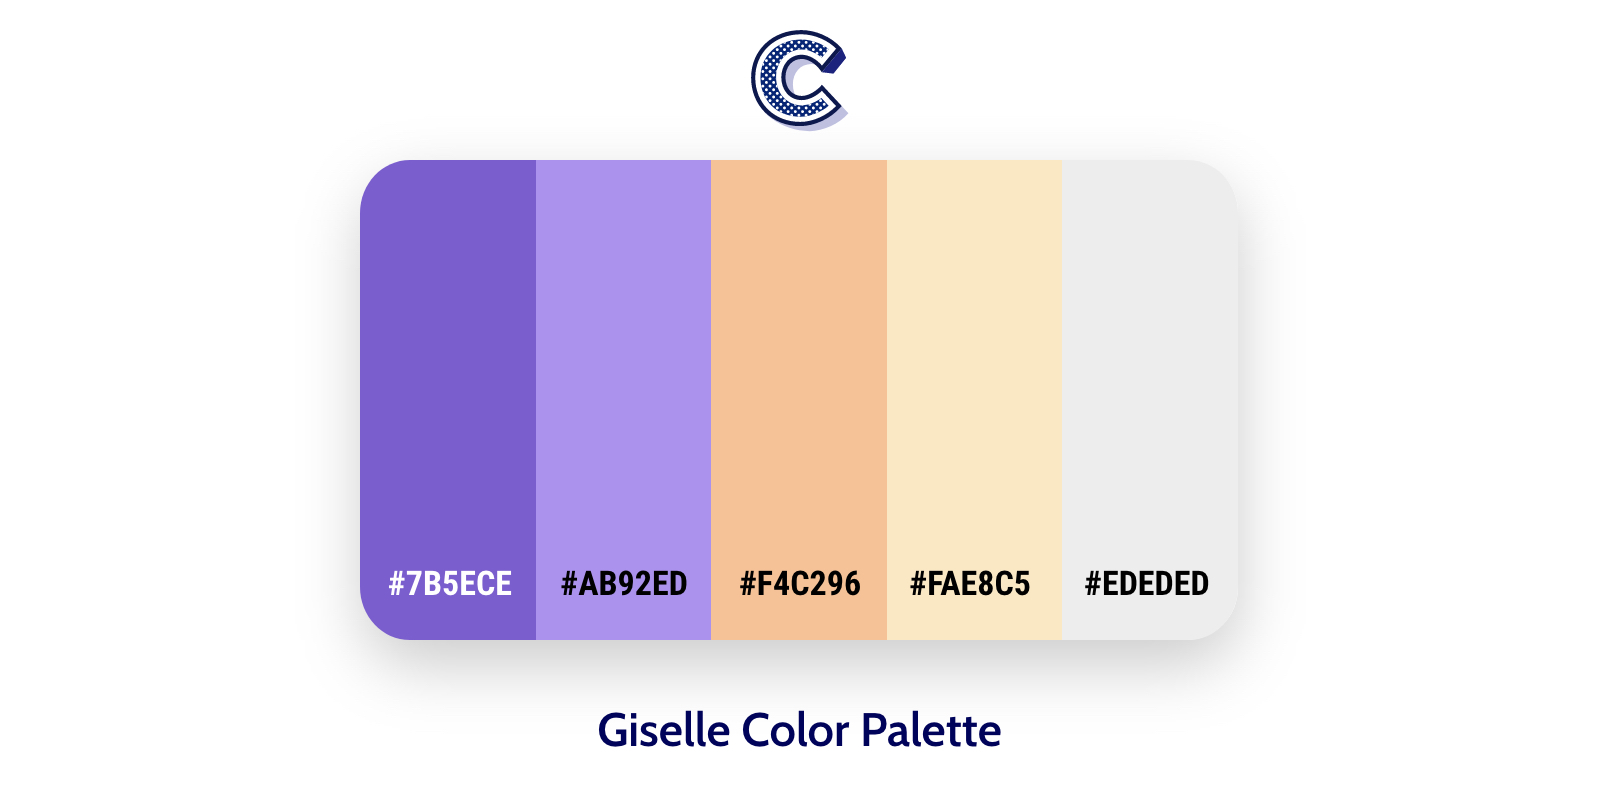 the featured image of giselle color palette